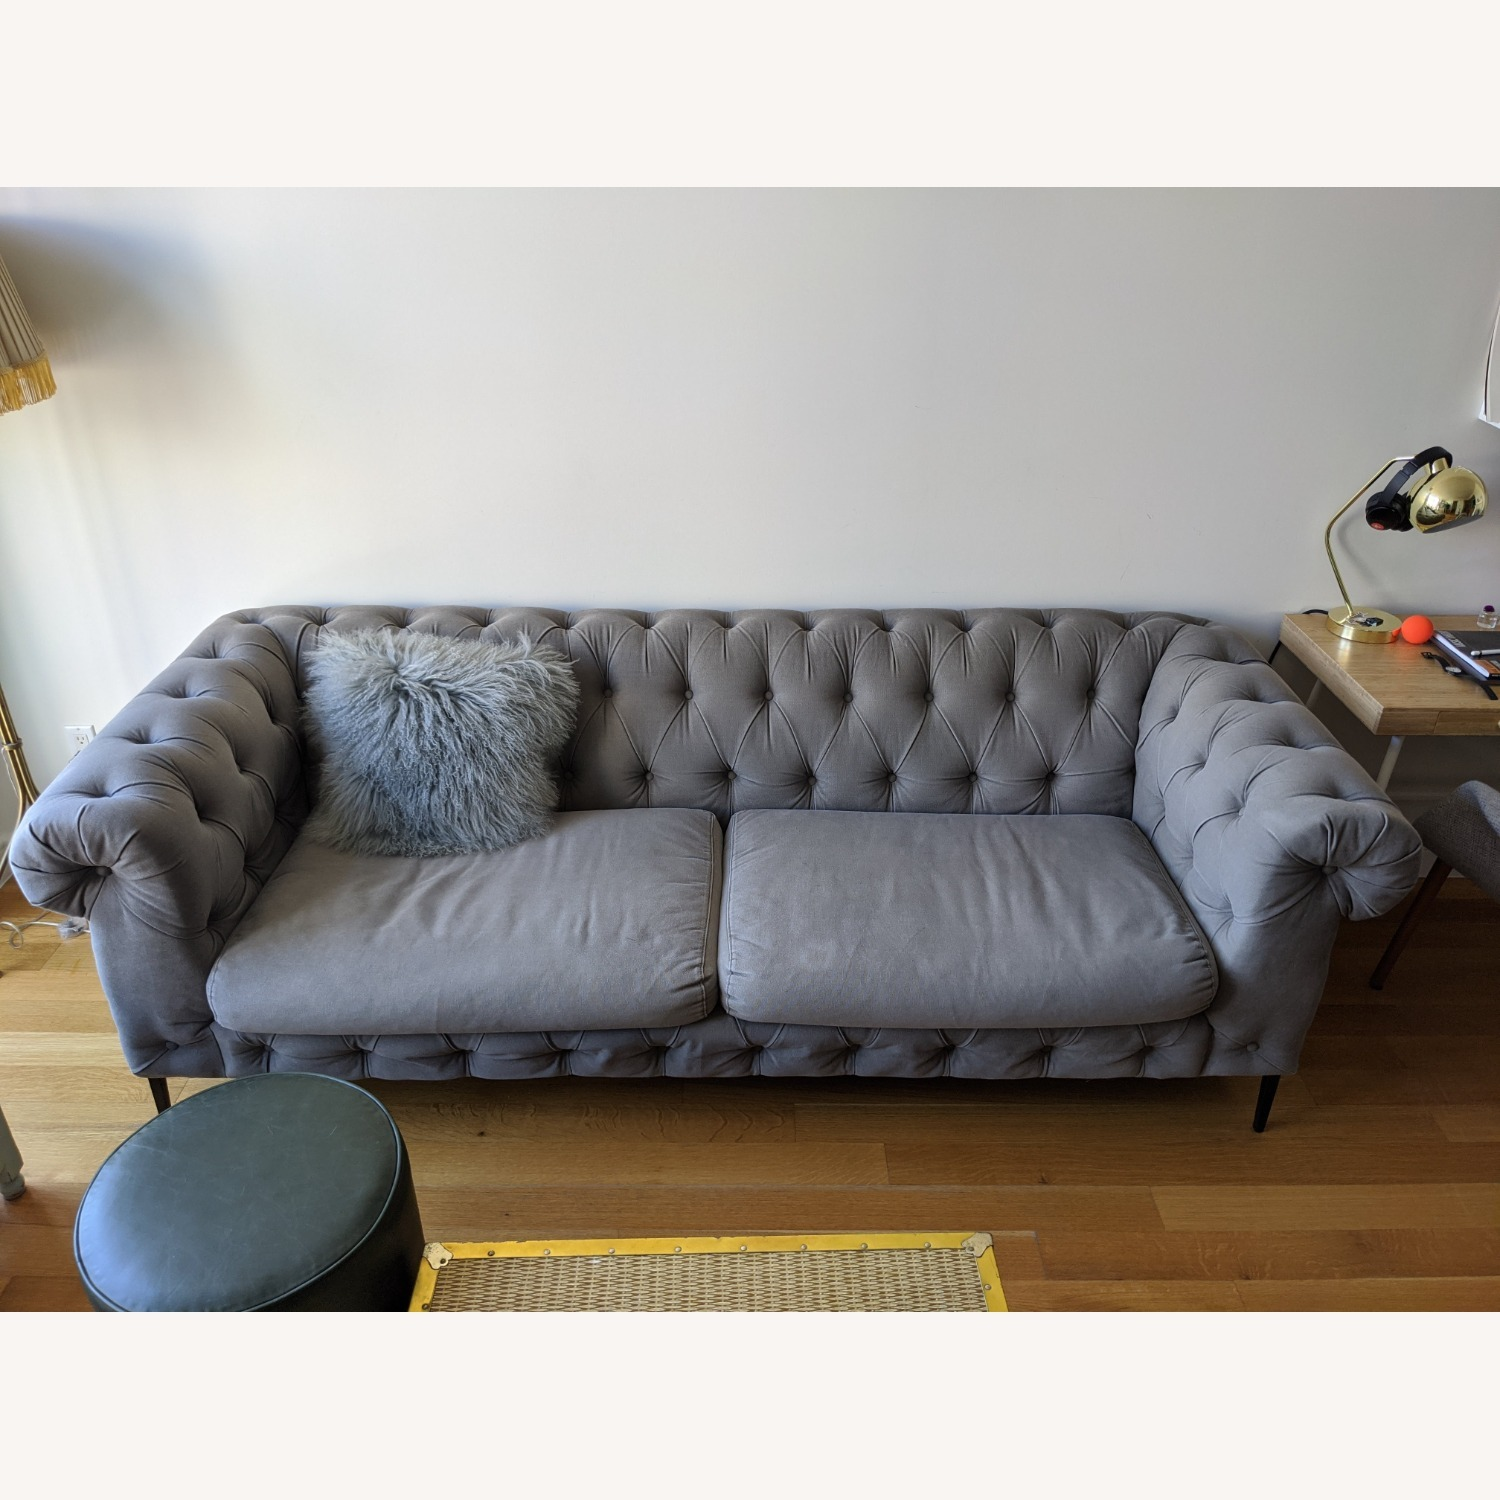 Anthropologie Canal Tufted Sofa - image-9